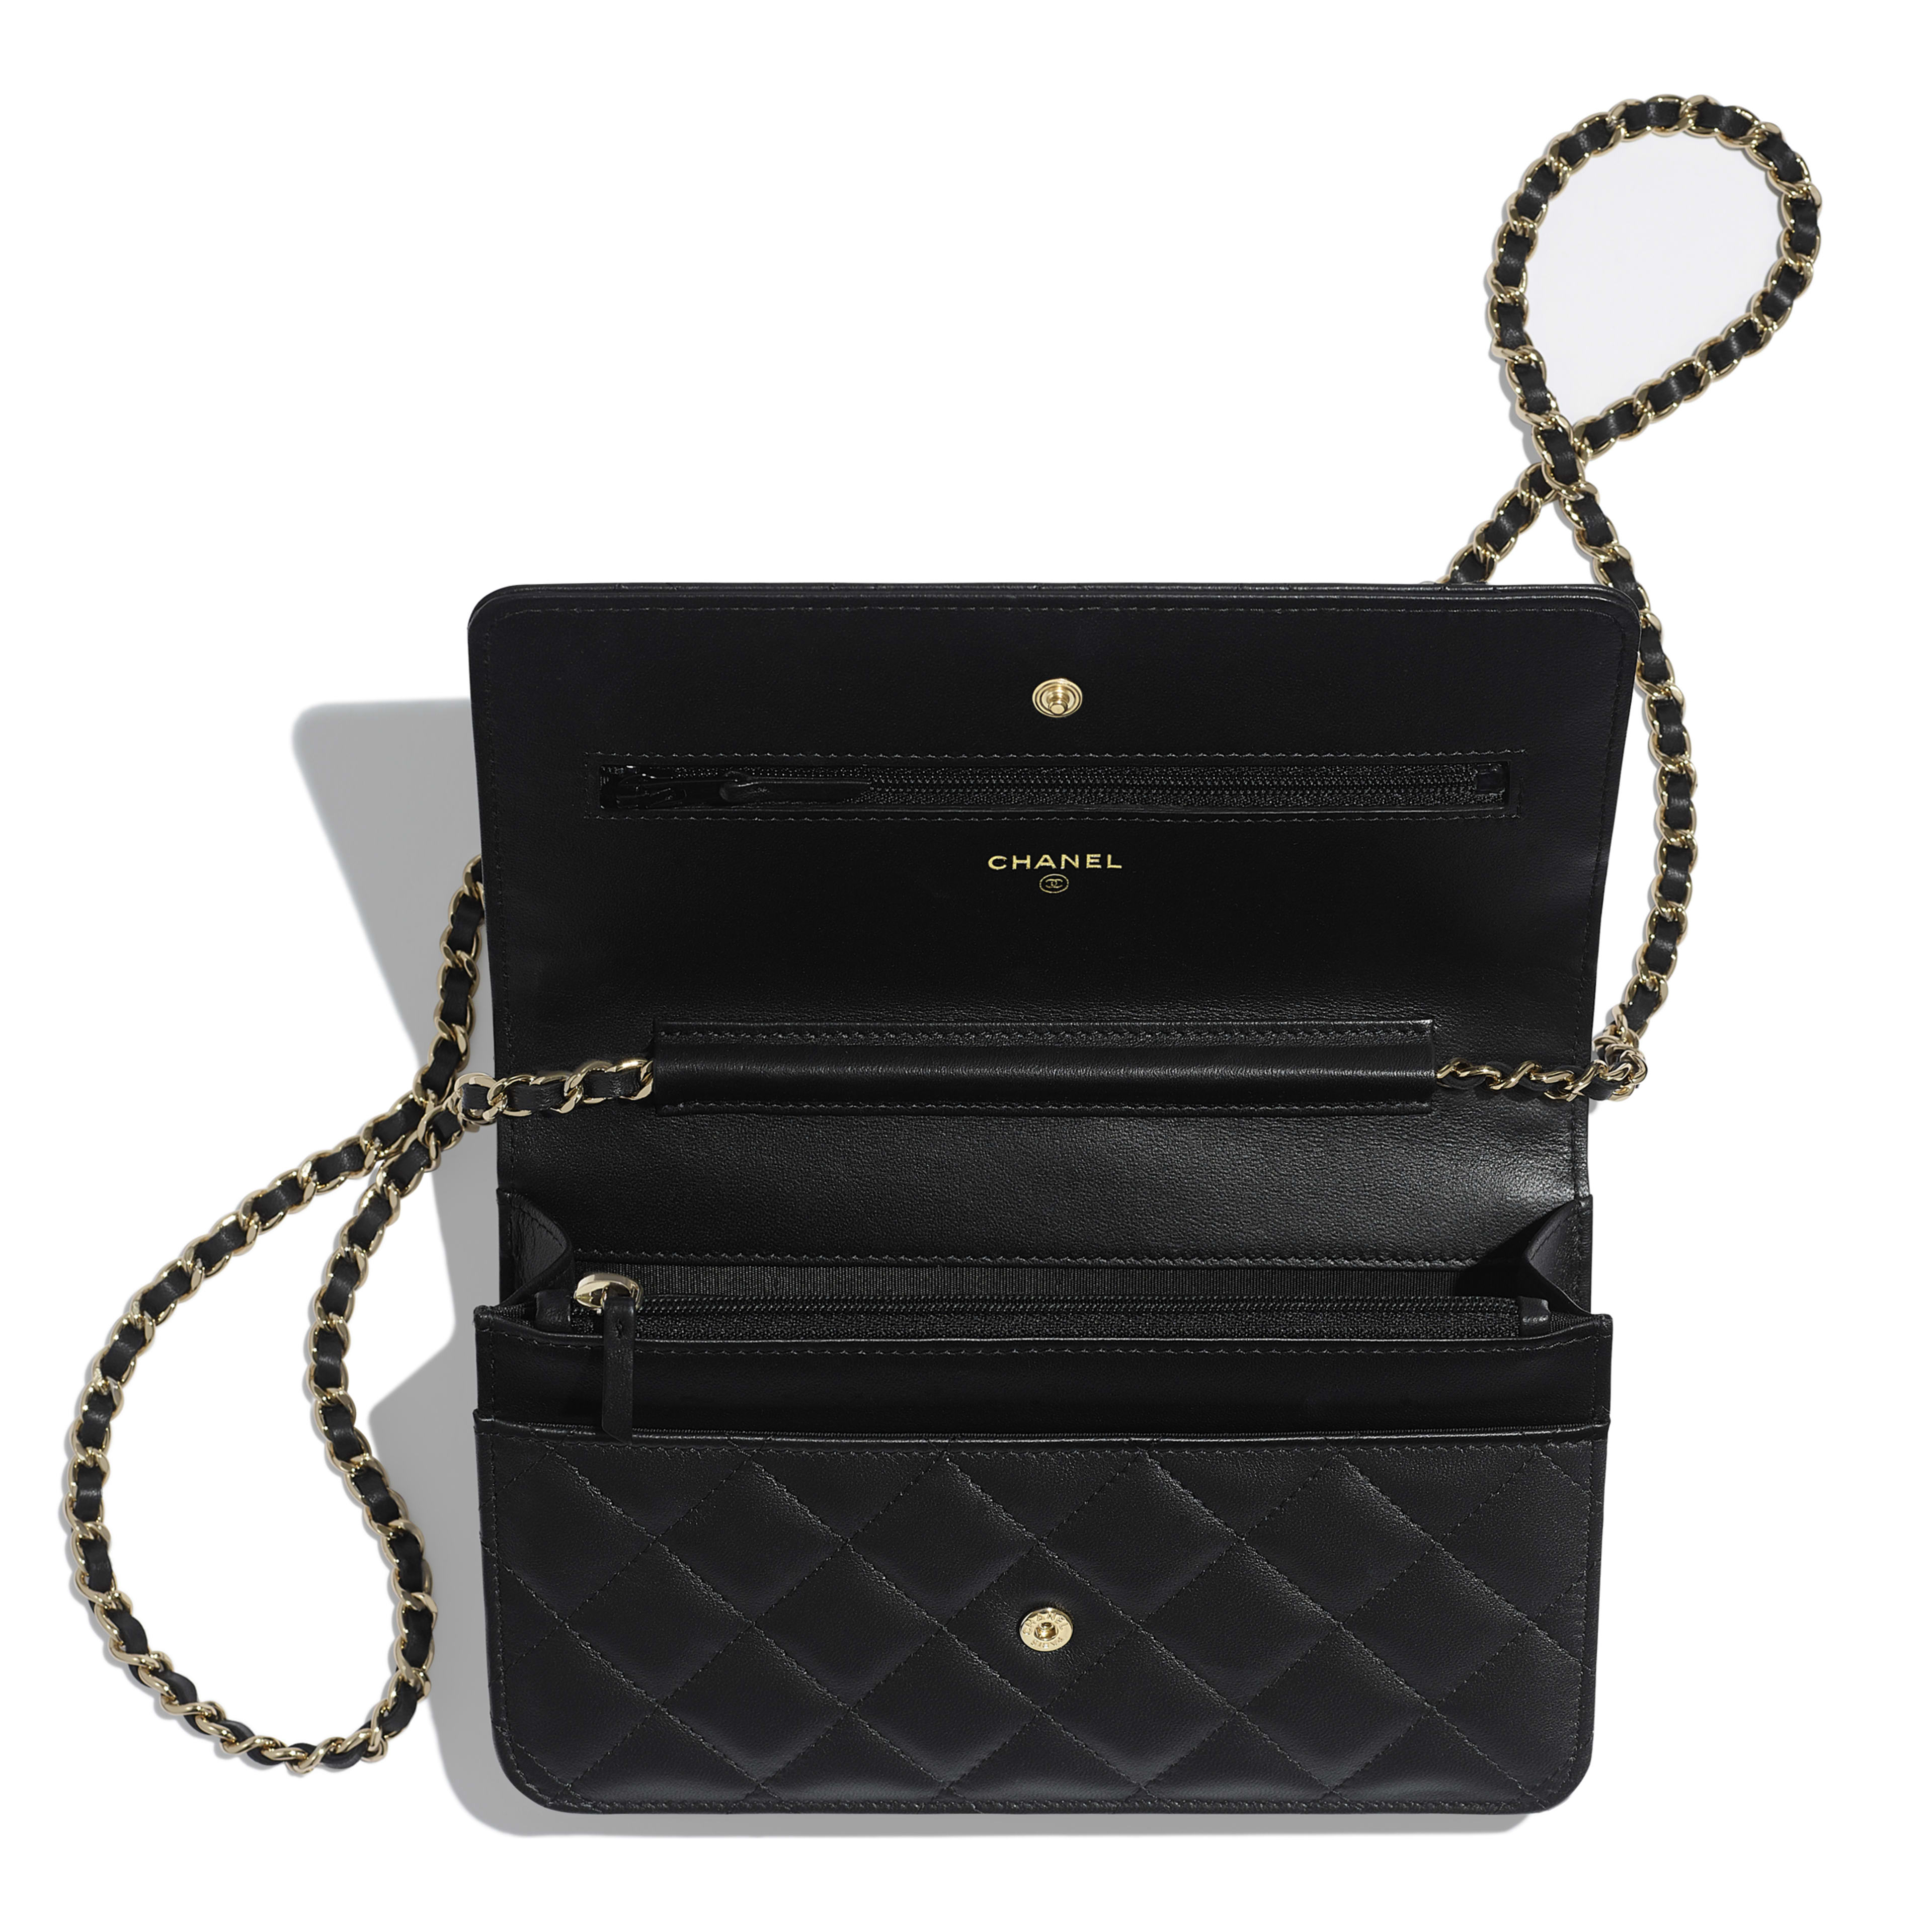 Wallet on Chain - Black - Lambskin, Chains & Gold-Tone Metal - Other view - see full sized version